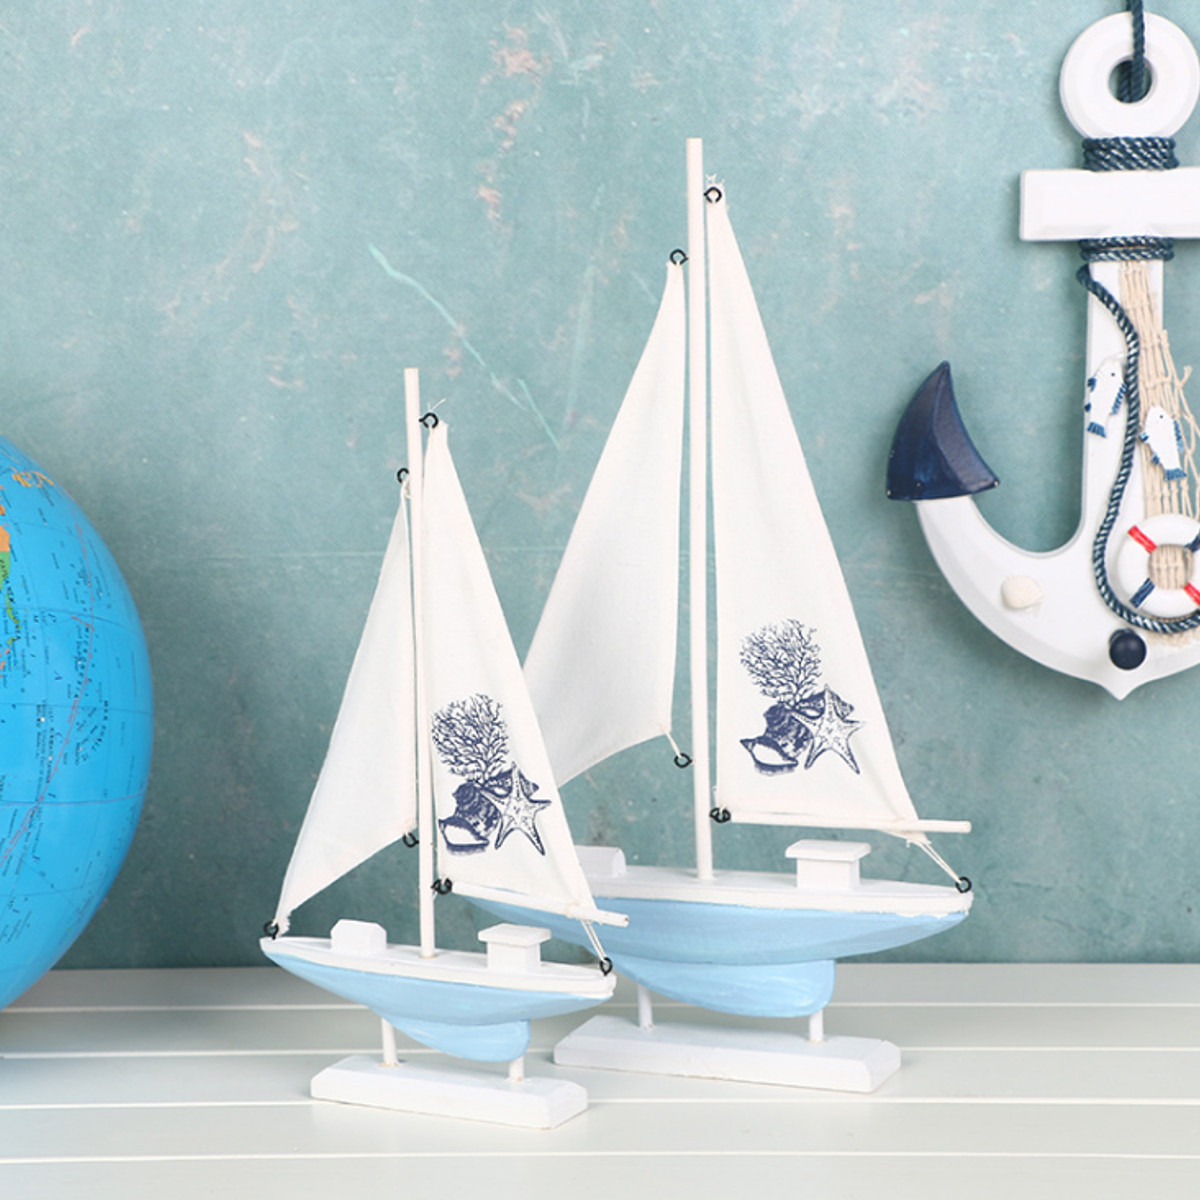 Ship-Assembly-Model-DIY-Kit-Wooden-Sailing-Boat-Decor-Wood-Toy-Gift-Collectables thumbnail 4